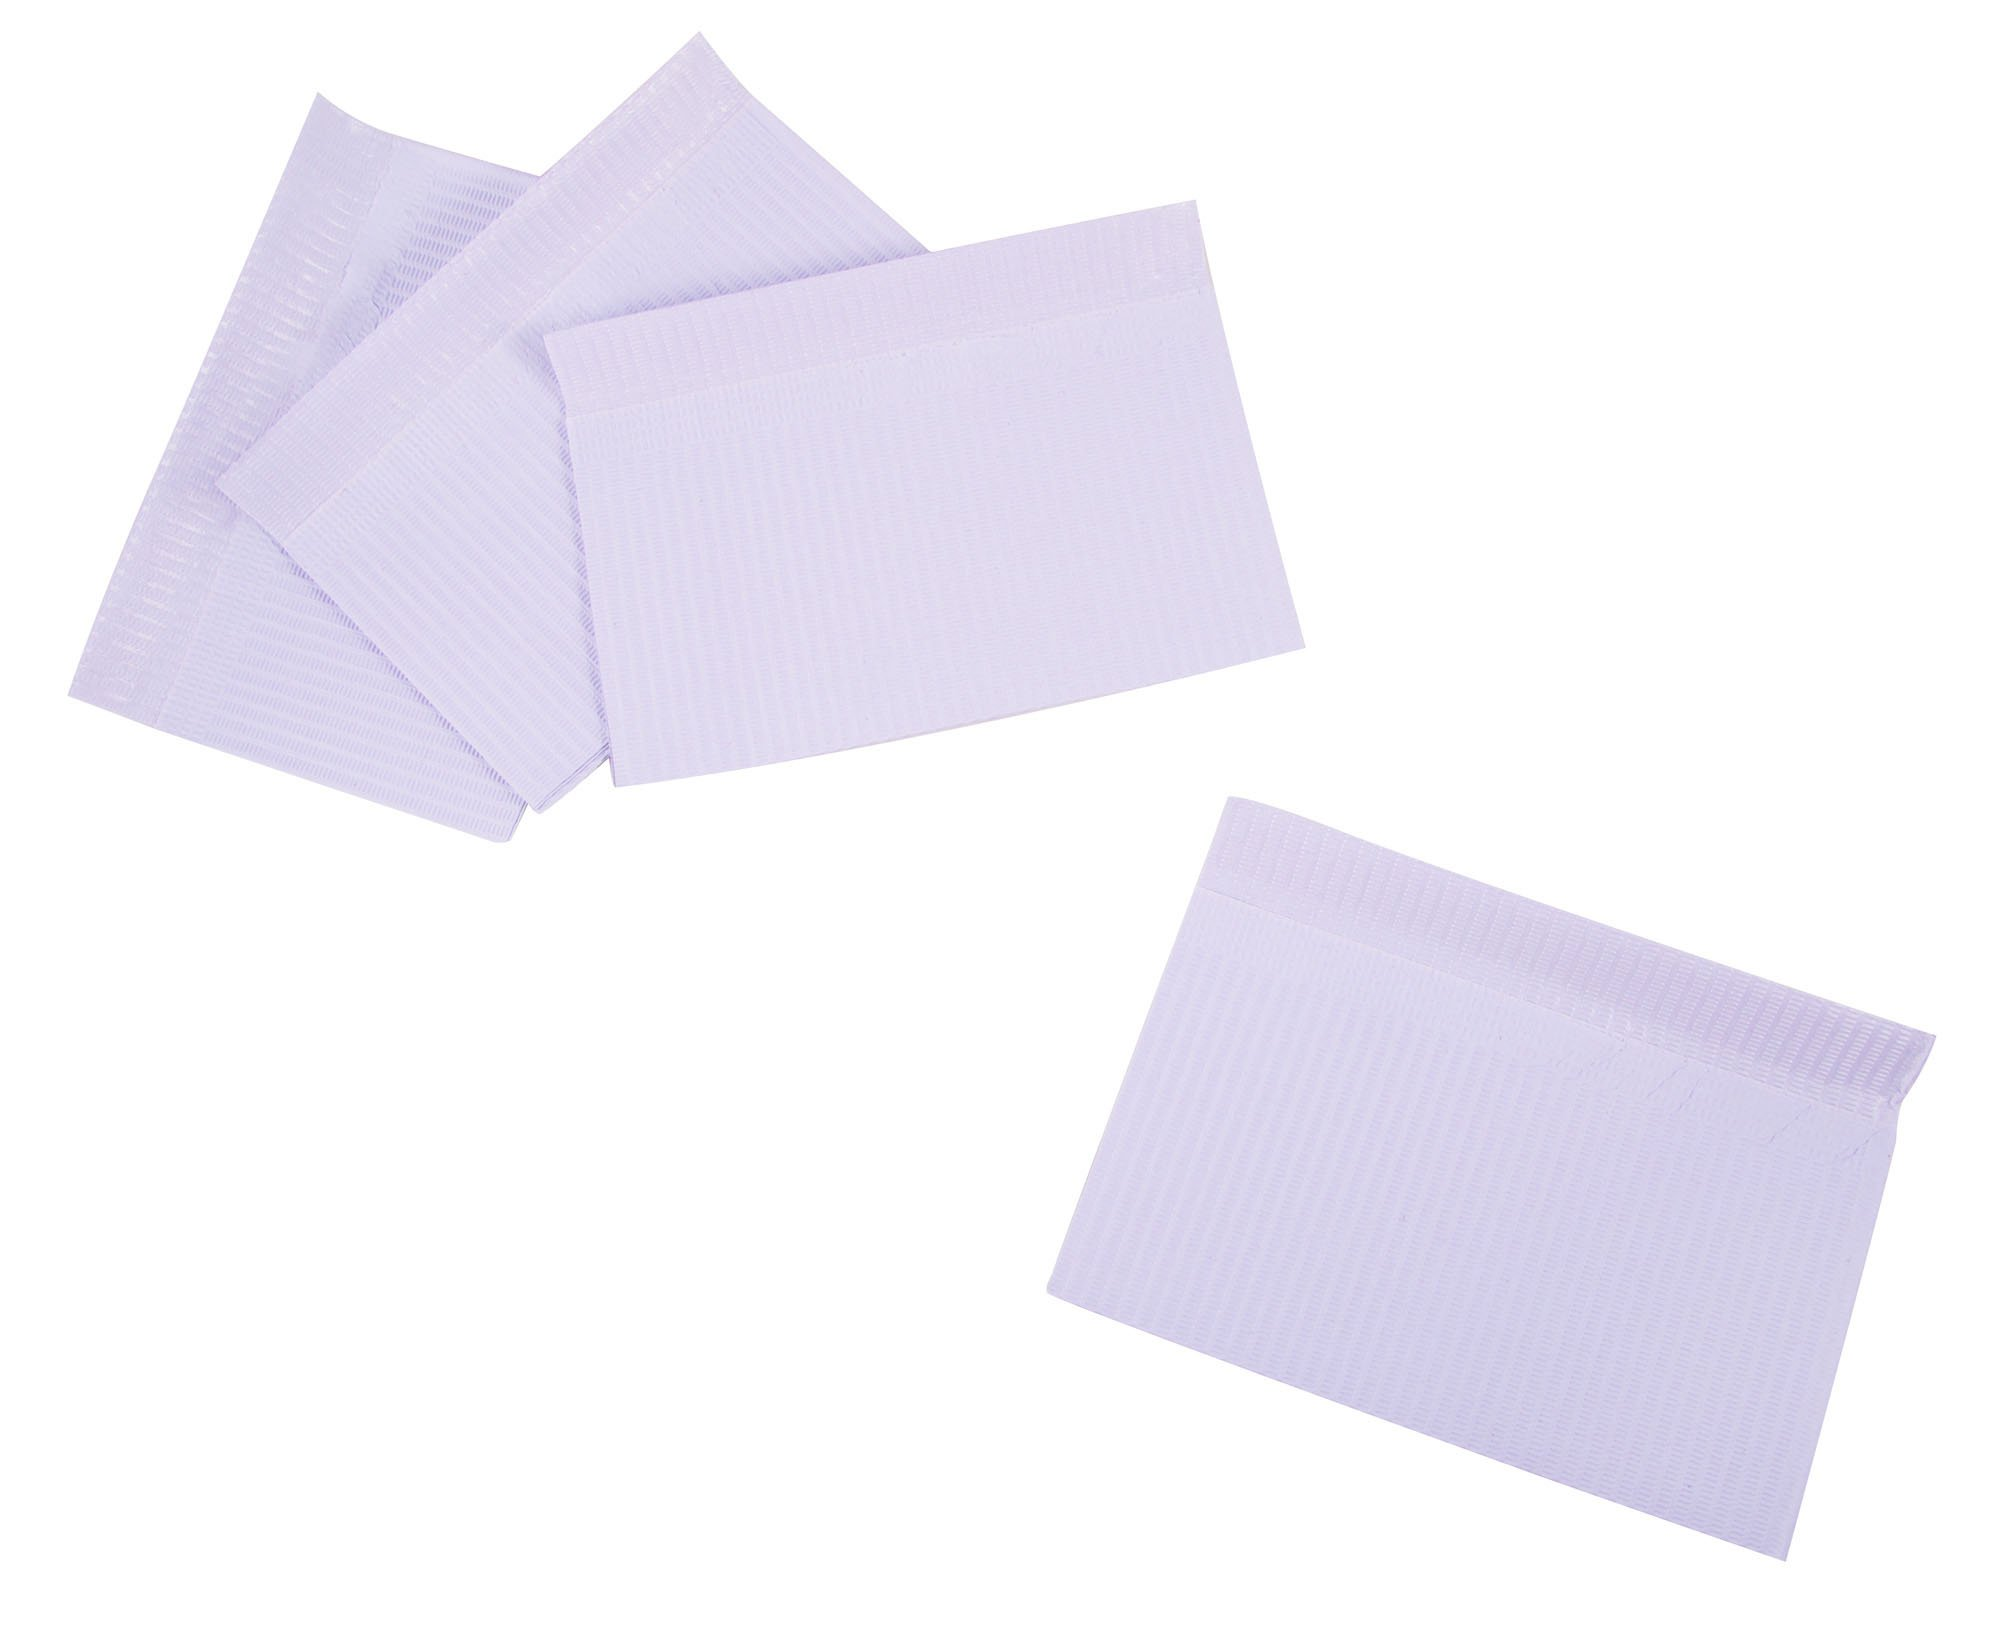 Primo Dental Products PBLV Patient Bib, 2-ply with Poly, 13'' x 18'', Lavender (Pack of 500)